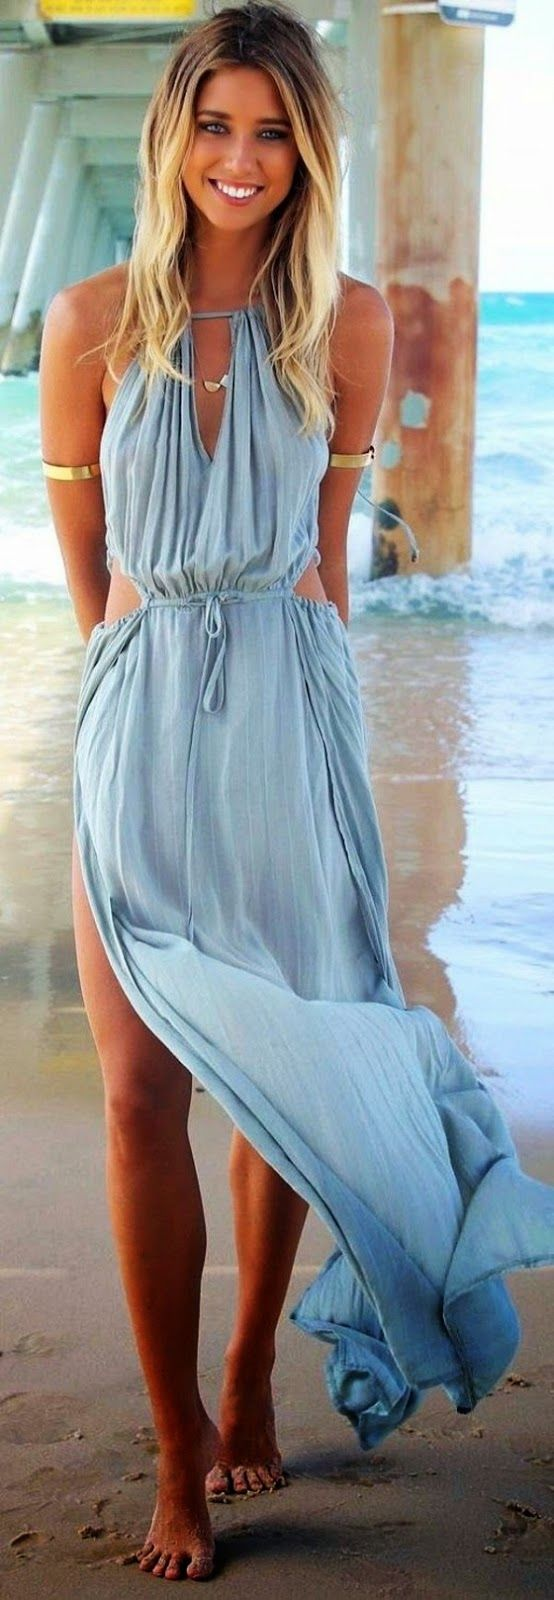 Beach Dress-super sexy but looks comfy, love it!